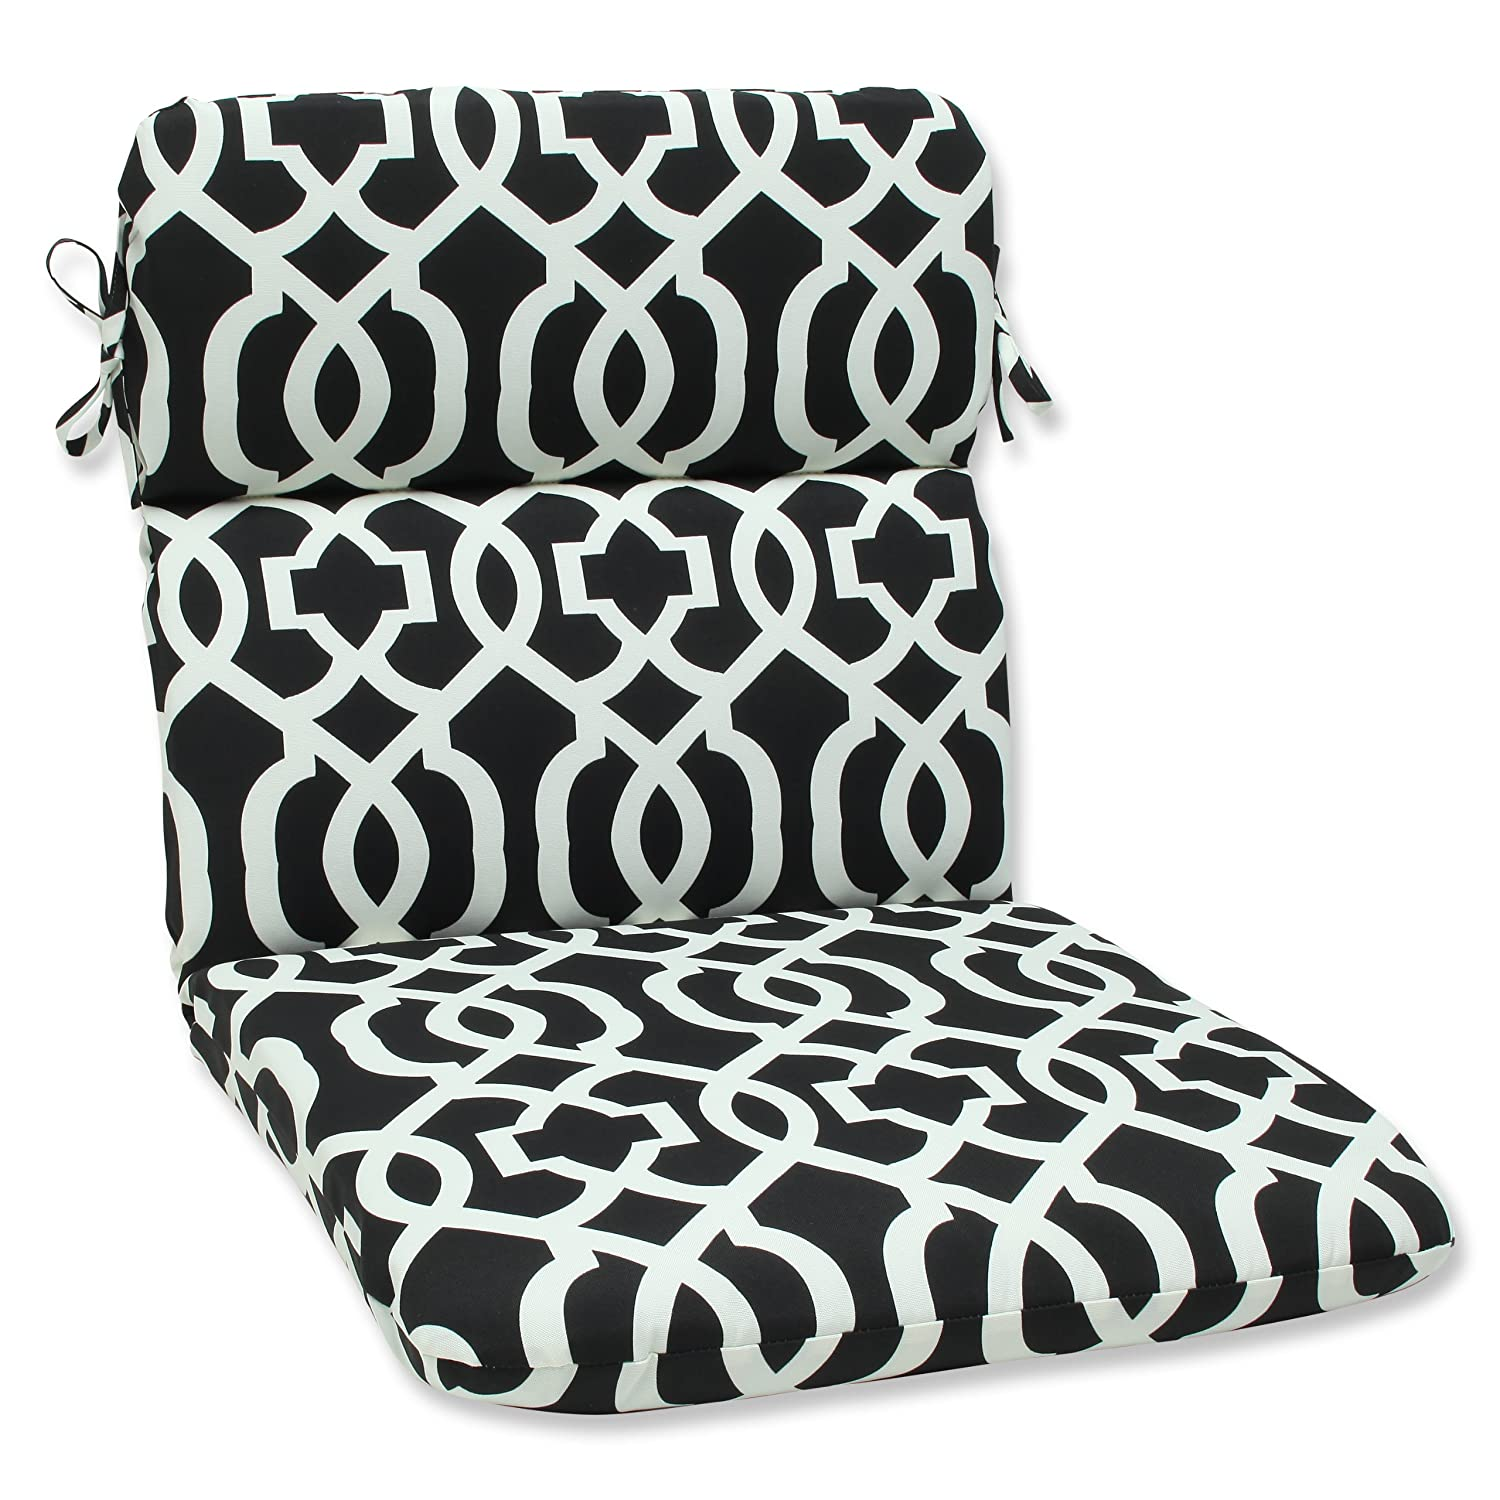 amazoncom pillow perfect outdoor new geo rounded corners chair cushion blackwhite home u0026 kitchen